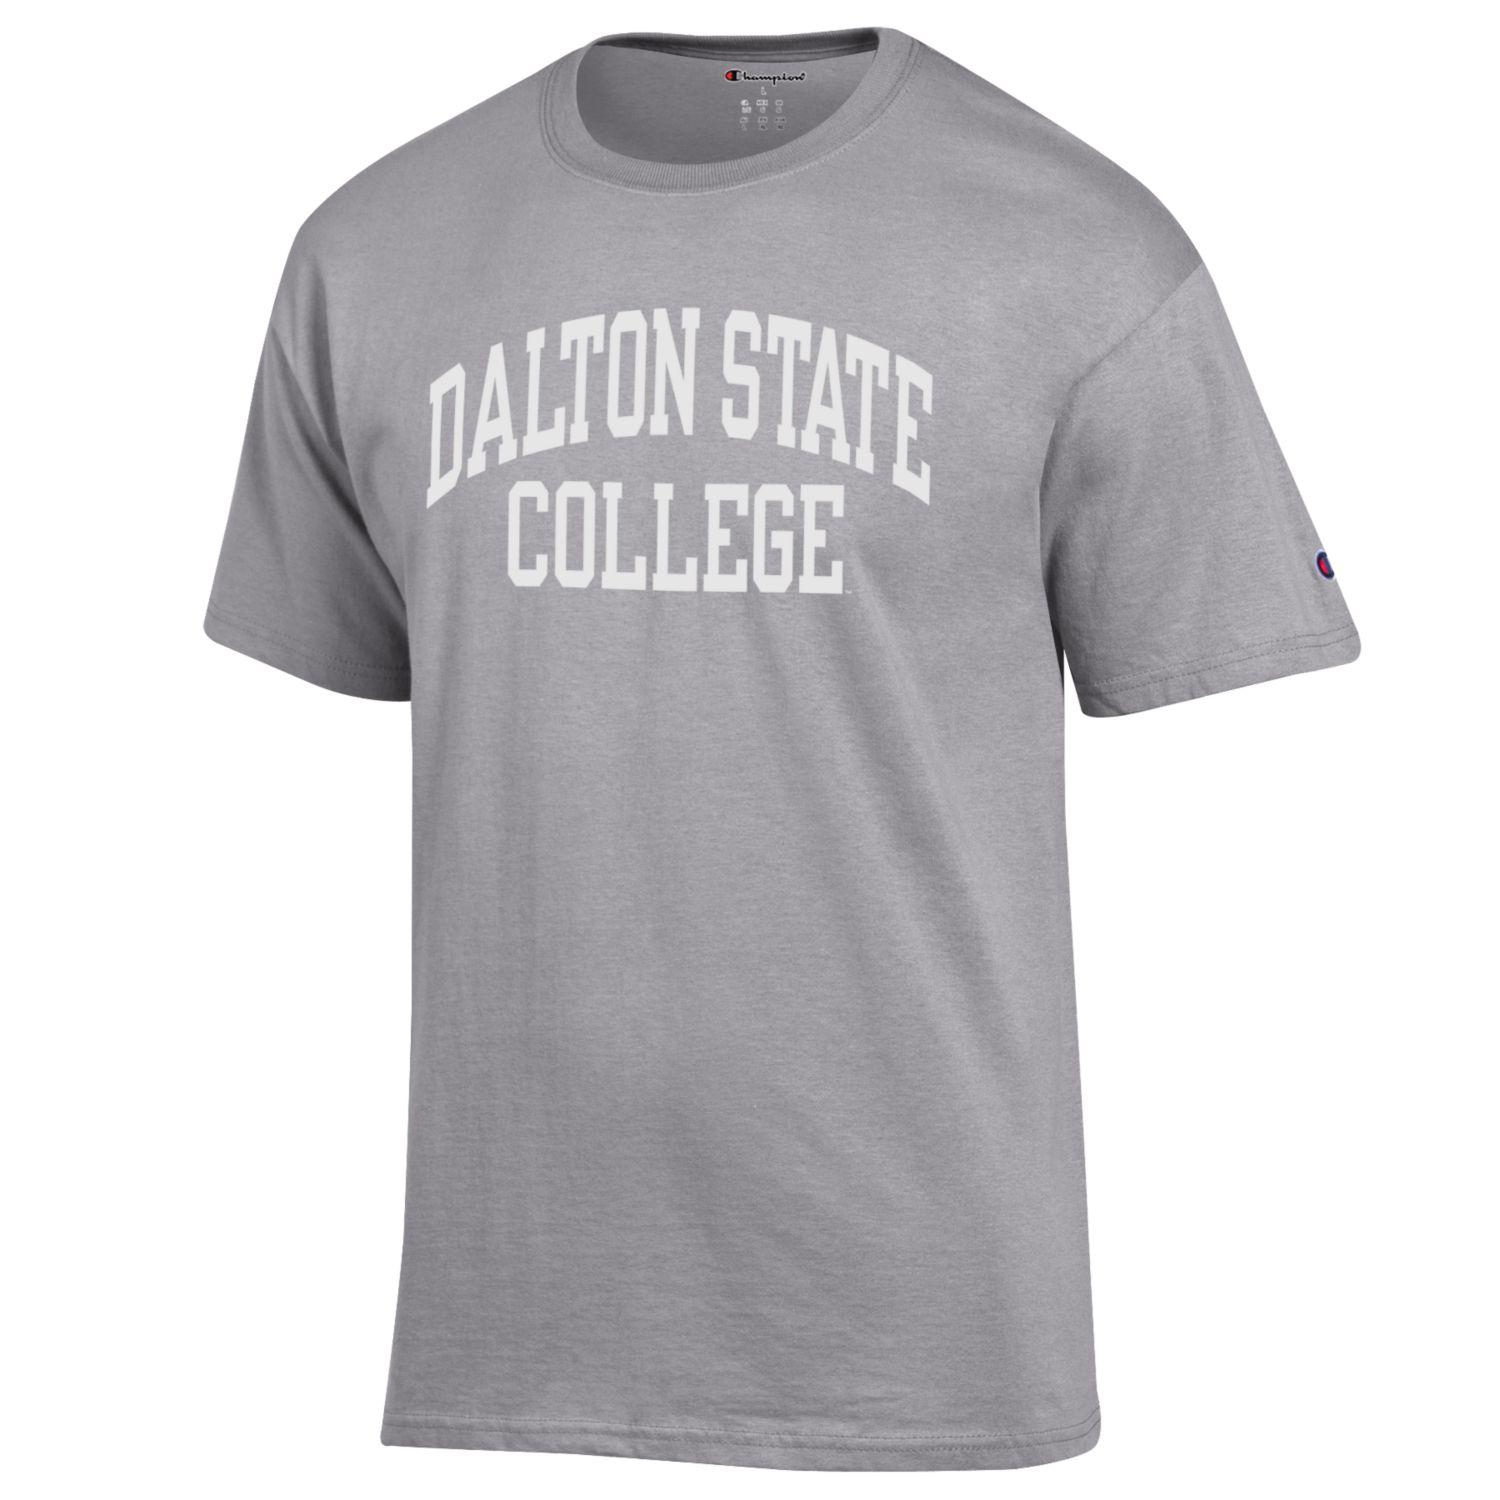 Dalton State College Arch Short Sleeve T-Shirt